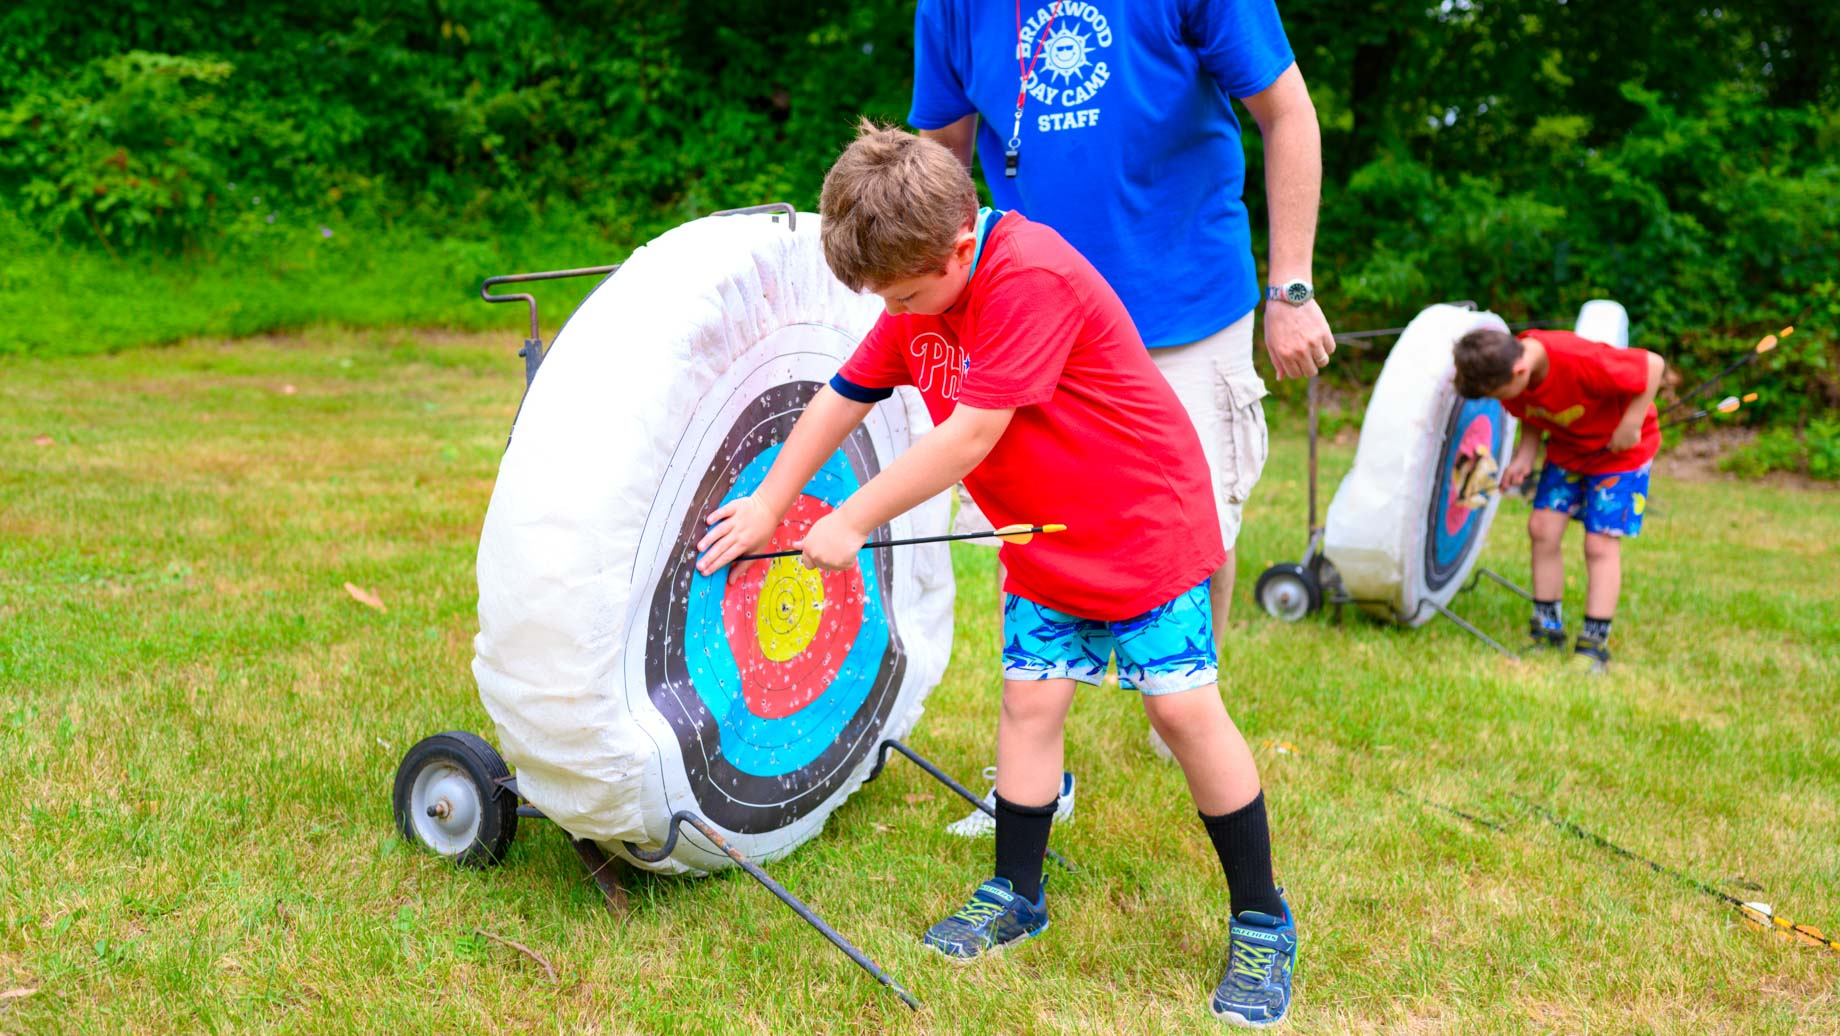 Camper taking archery arrow out of target